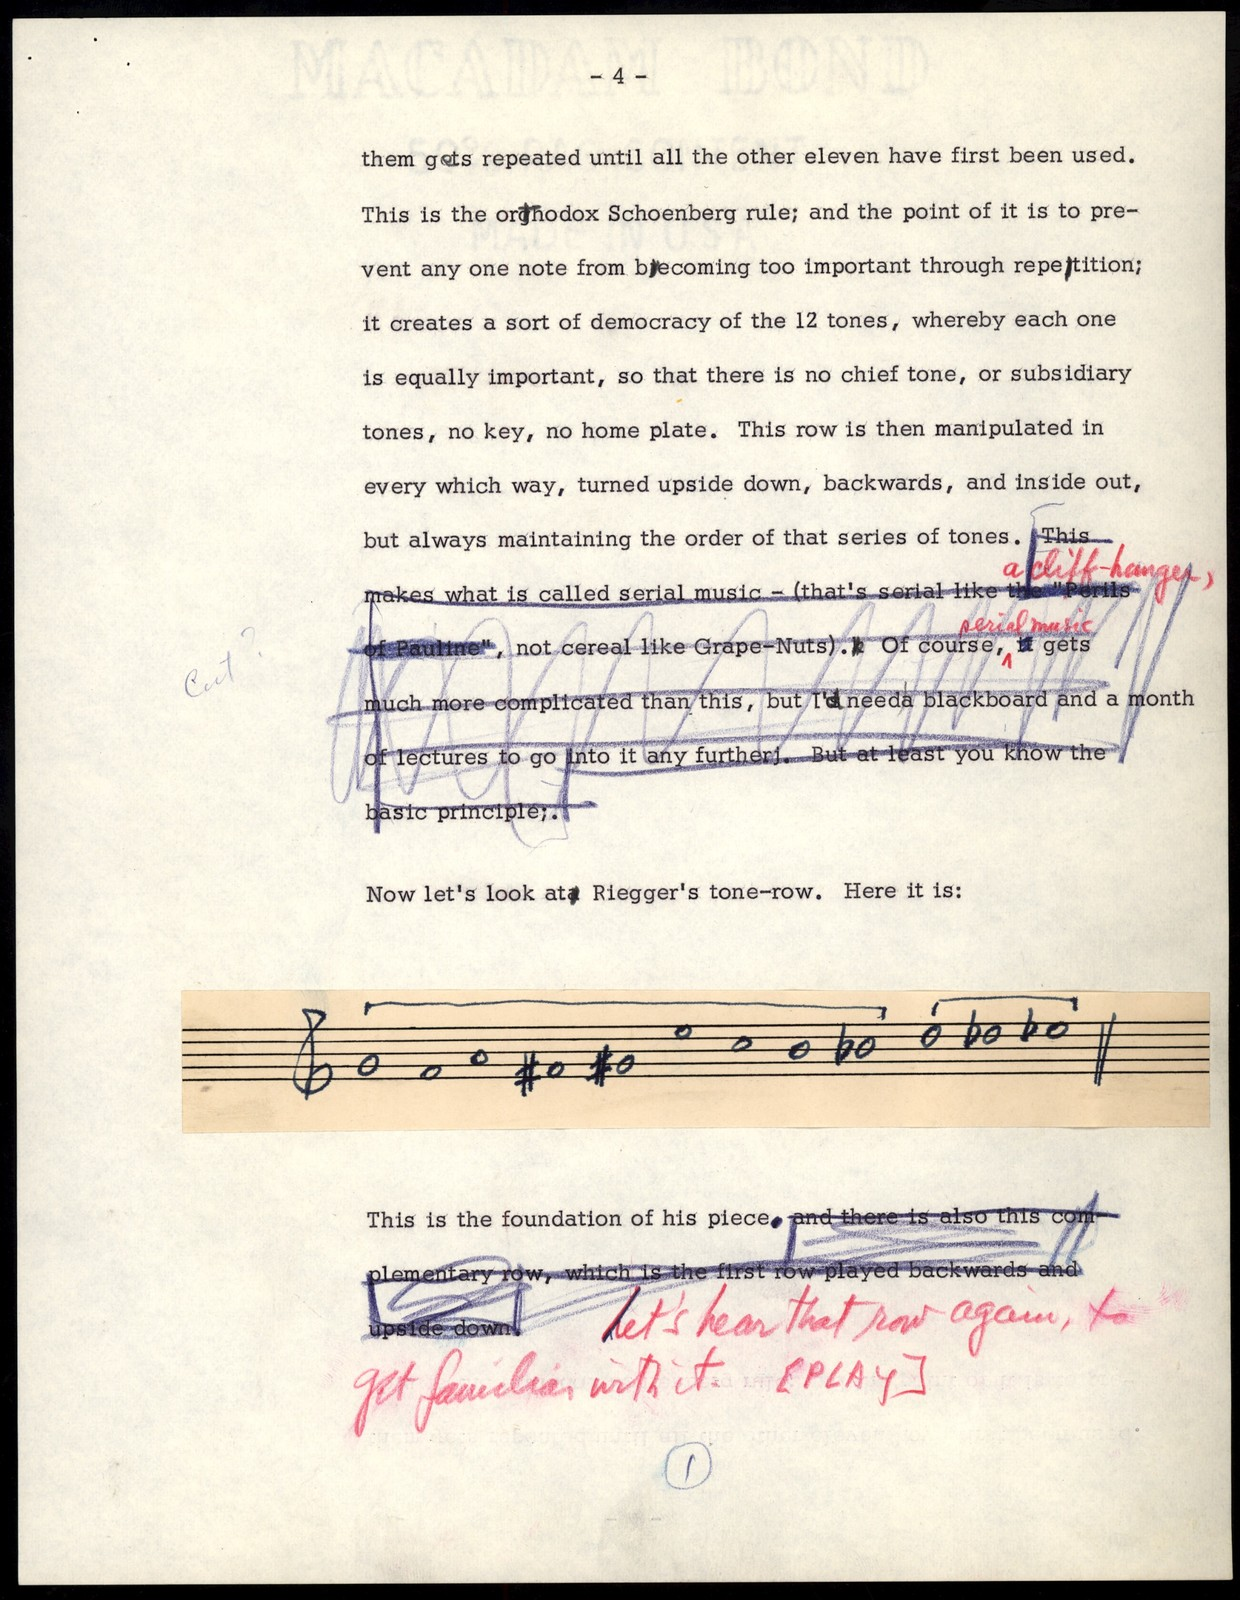 Thursday Evening Previews Scripts: Three Pioneers [typescripts with pasteovers of musical examples in ink, & emendations in red, blue & black pencil]